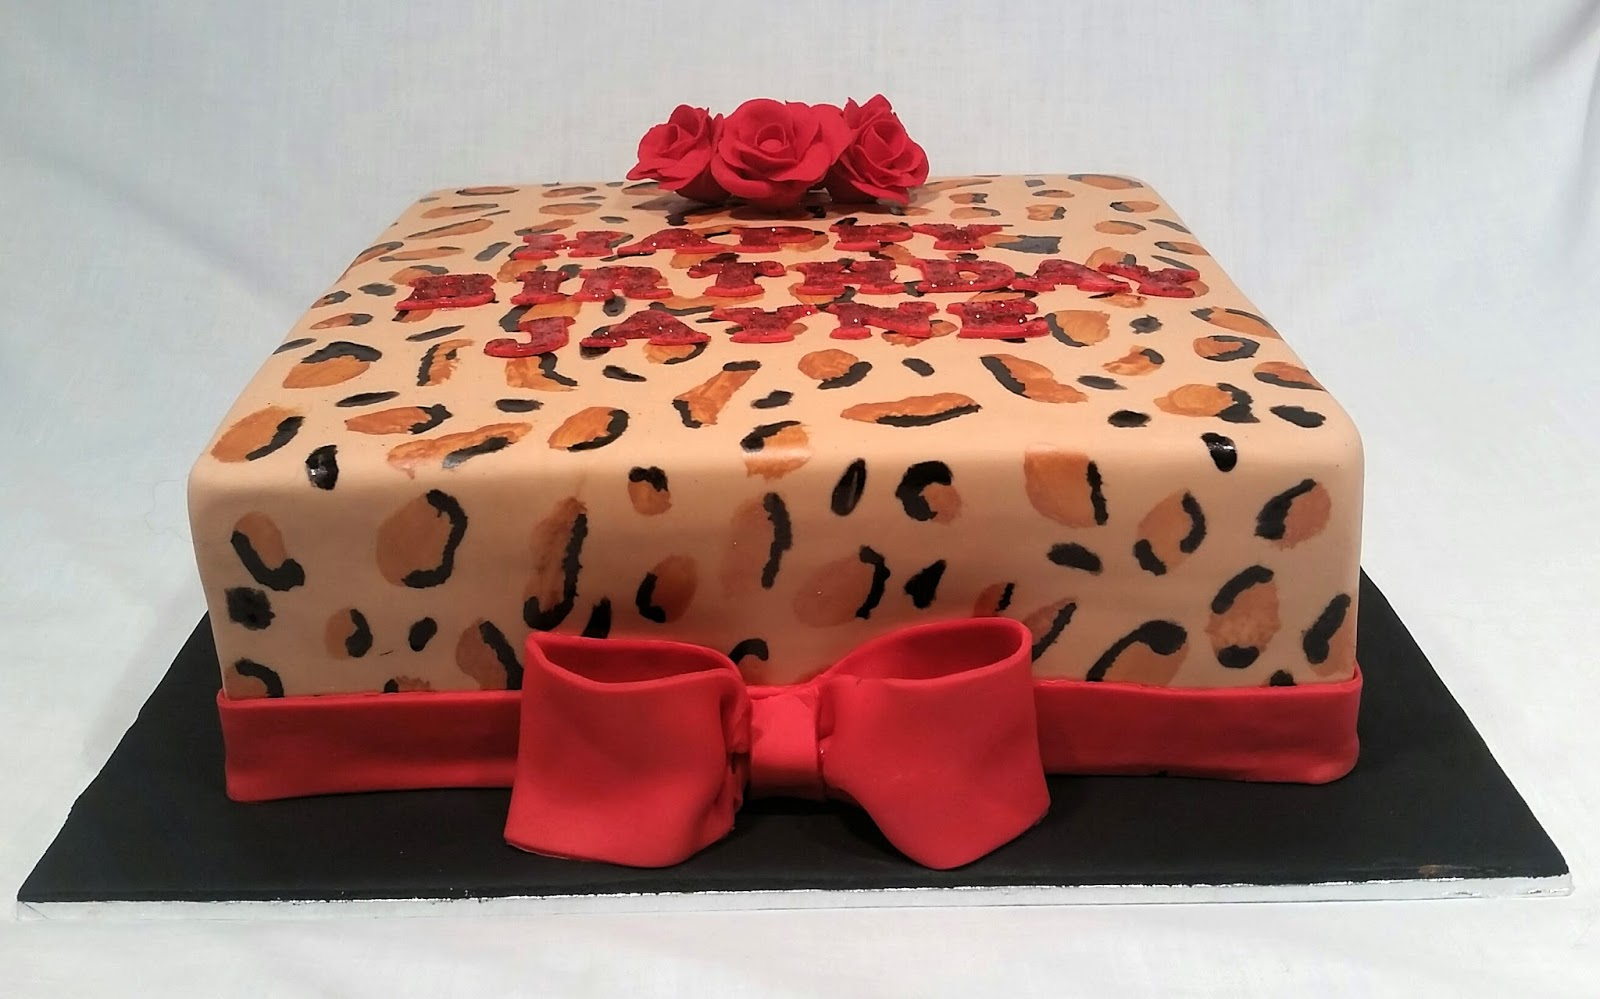 Caramel Mud Cake Filled With Dark Chocolate Ganache Finished Fondant And A Hand Painted Leopard Print Design Made Sugar Roses